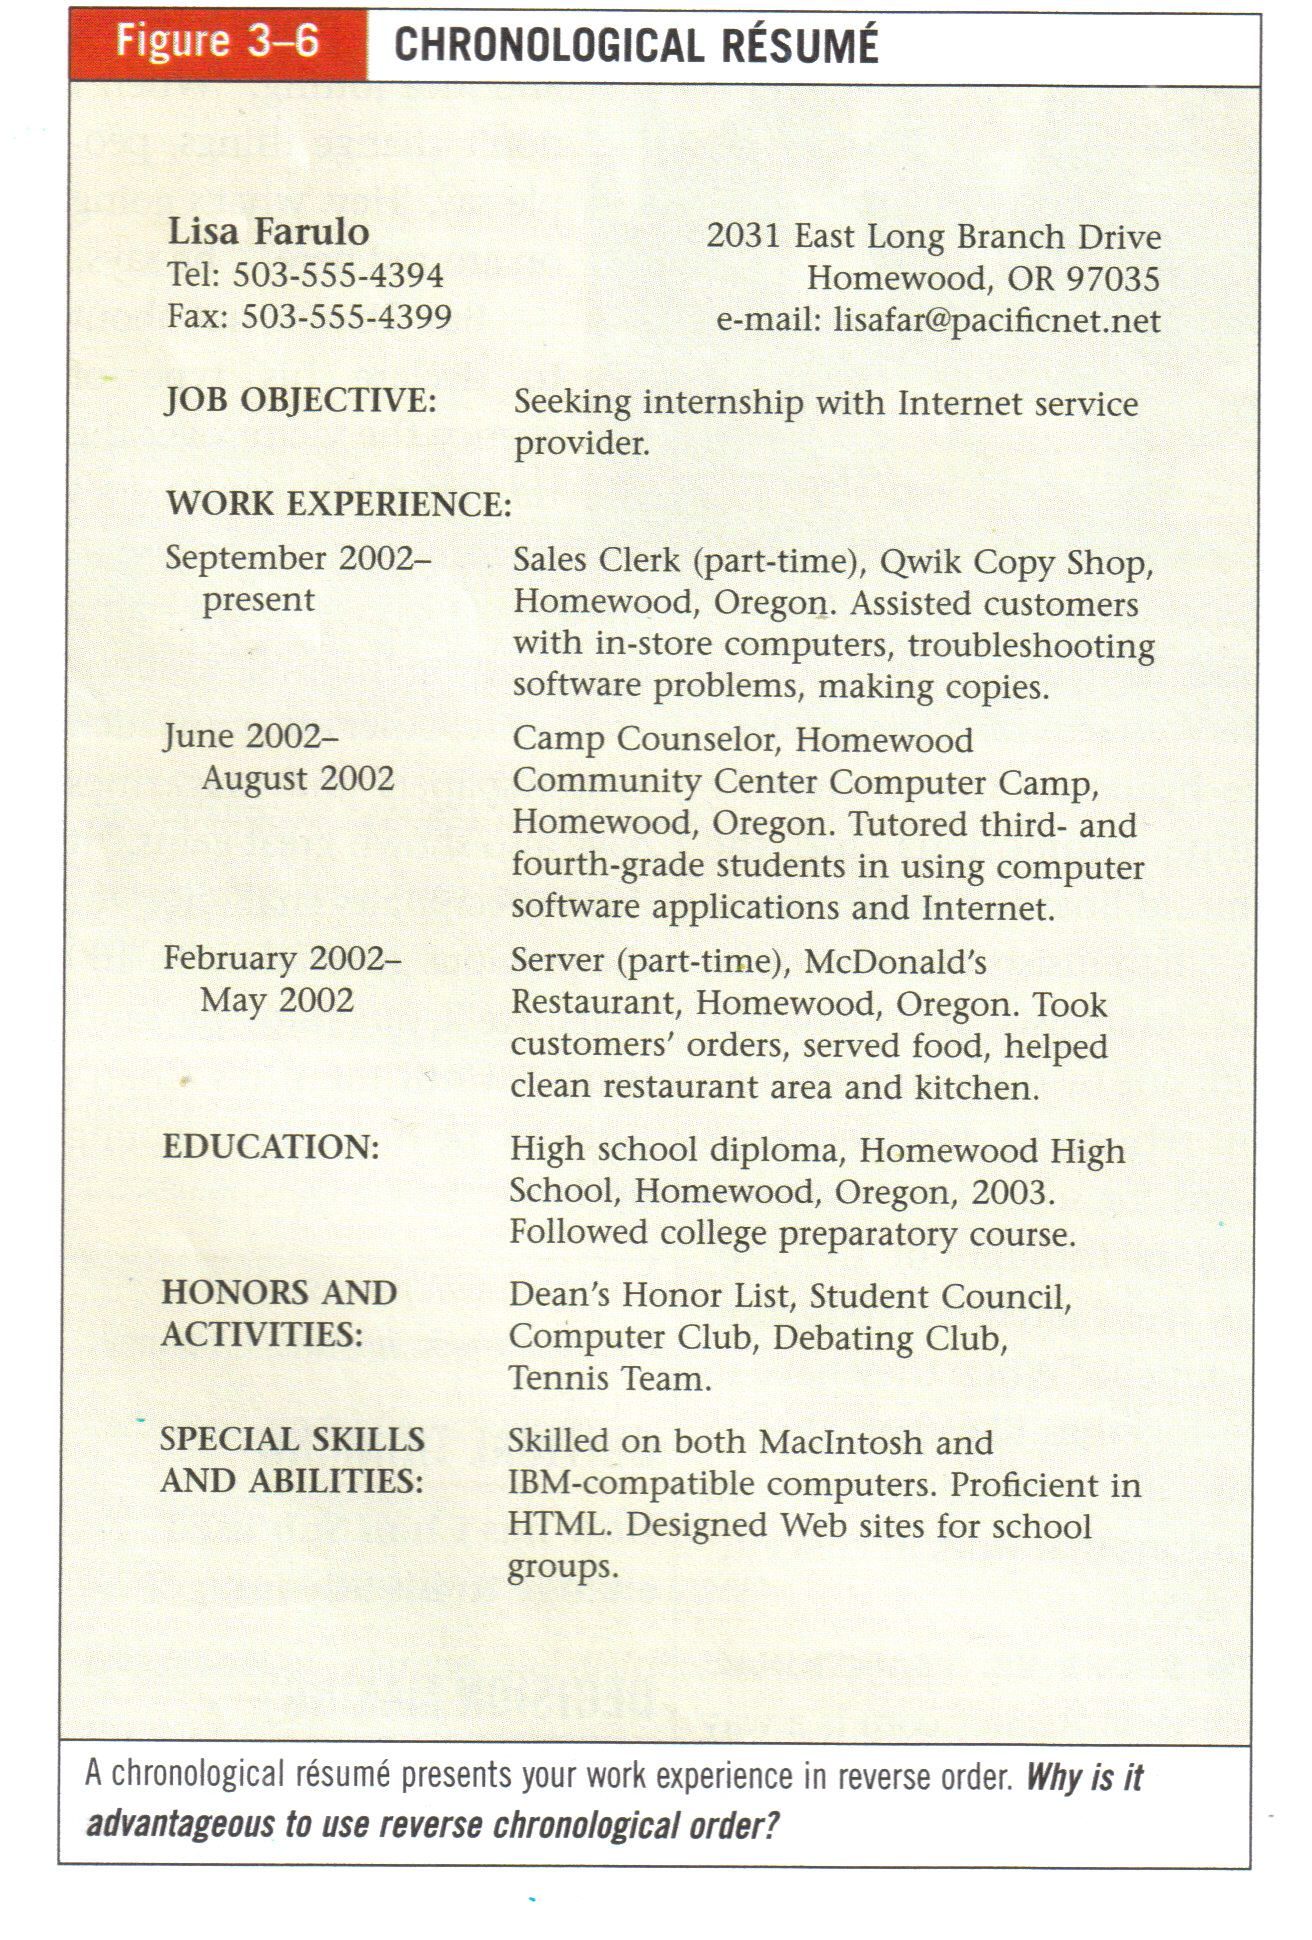 sample chronological resume. Resume Example. Resume CV Cover Letter